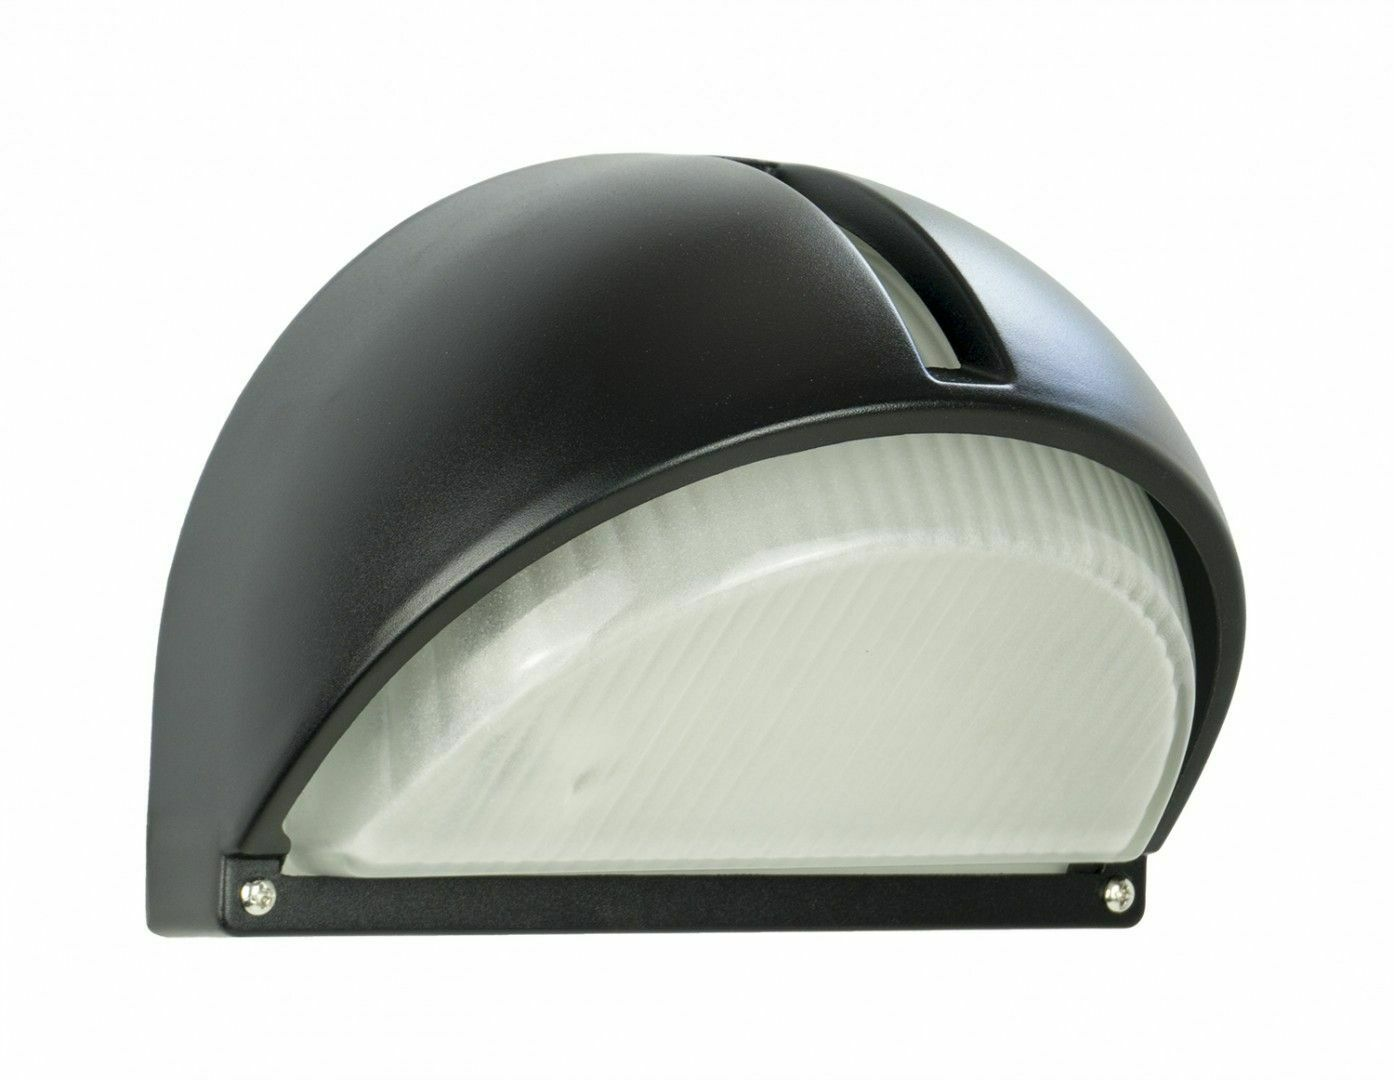 Willy 5284 B outdoor wall lamp